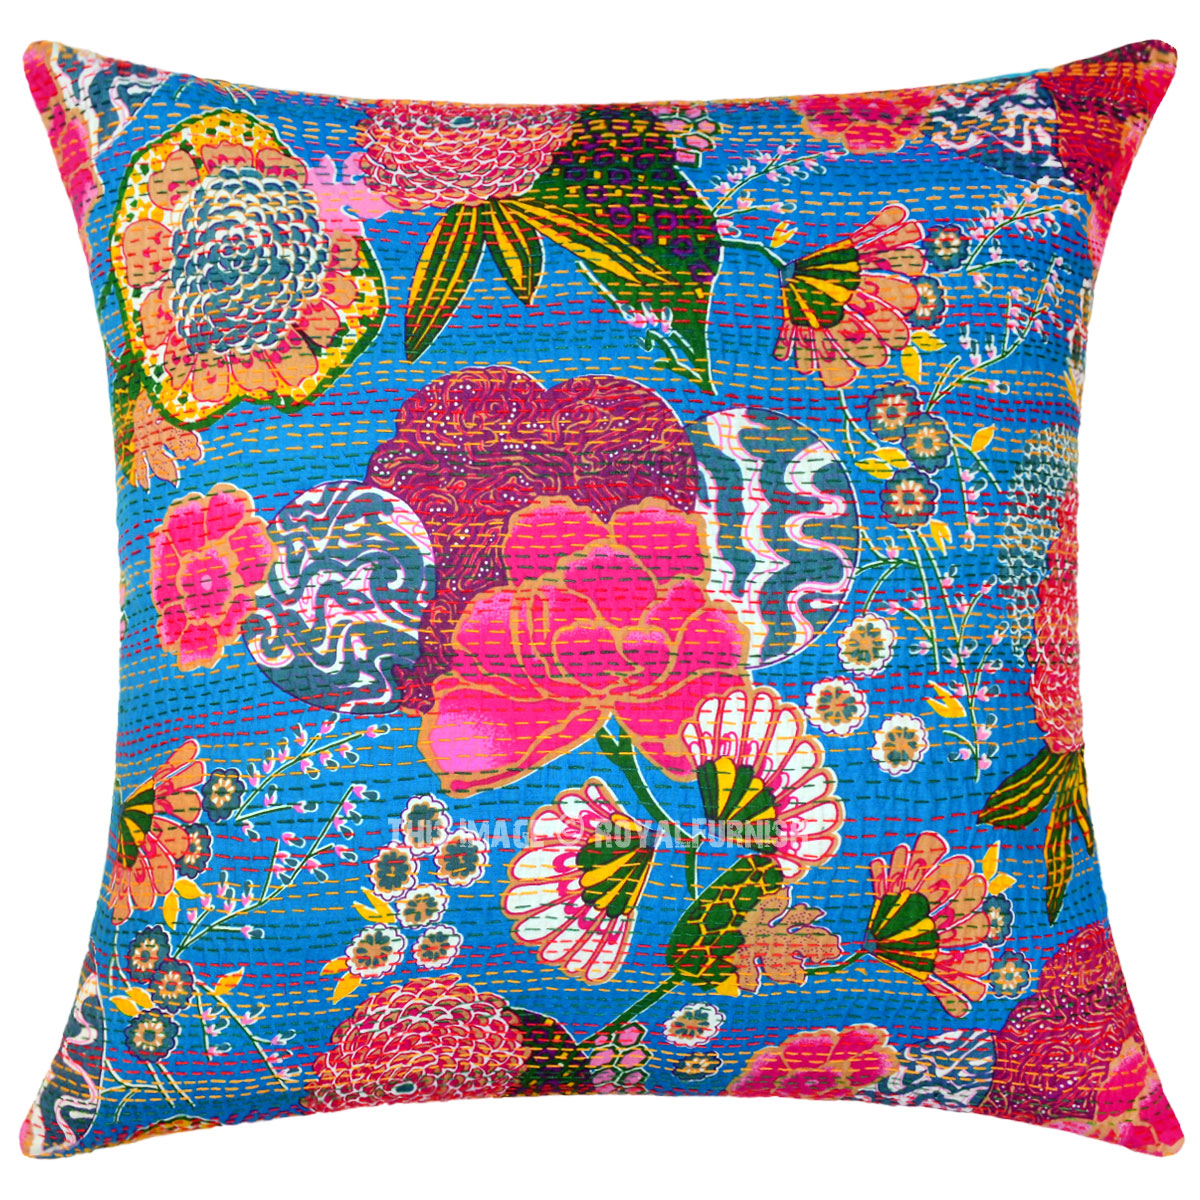 Large Blue Decorative Pillows : Large Blue Decorative & Accent Kantha Throw Pillow Cover 24X24 Inch - RoyalFurnish.com